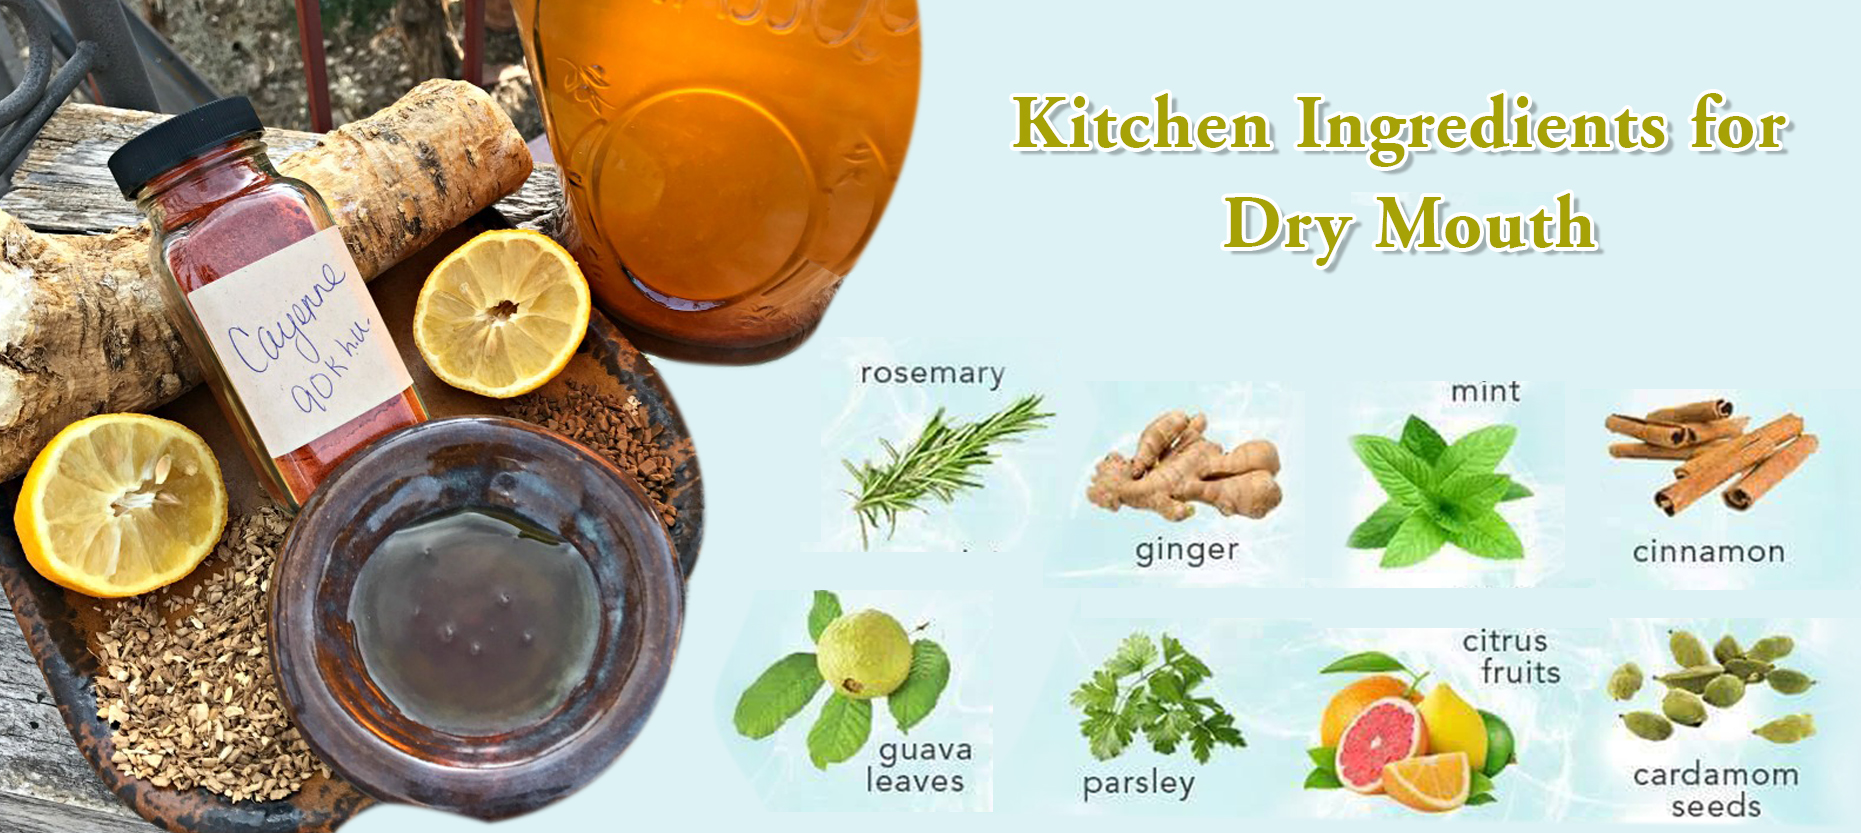 15 Instant Remedies for Dry Mouth in your Kitchen